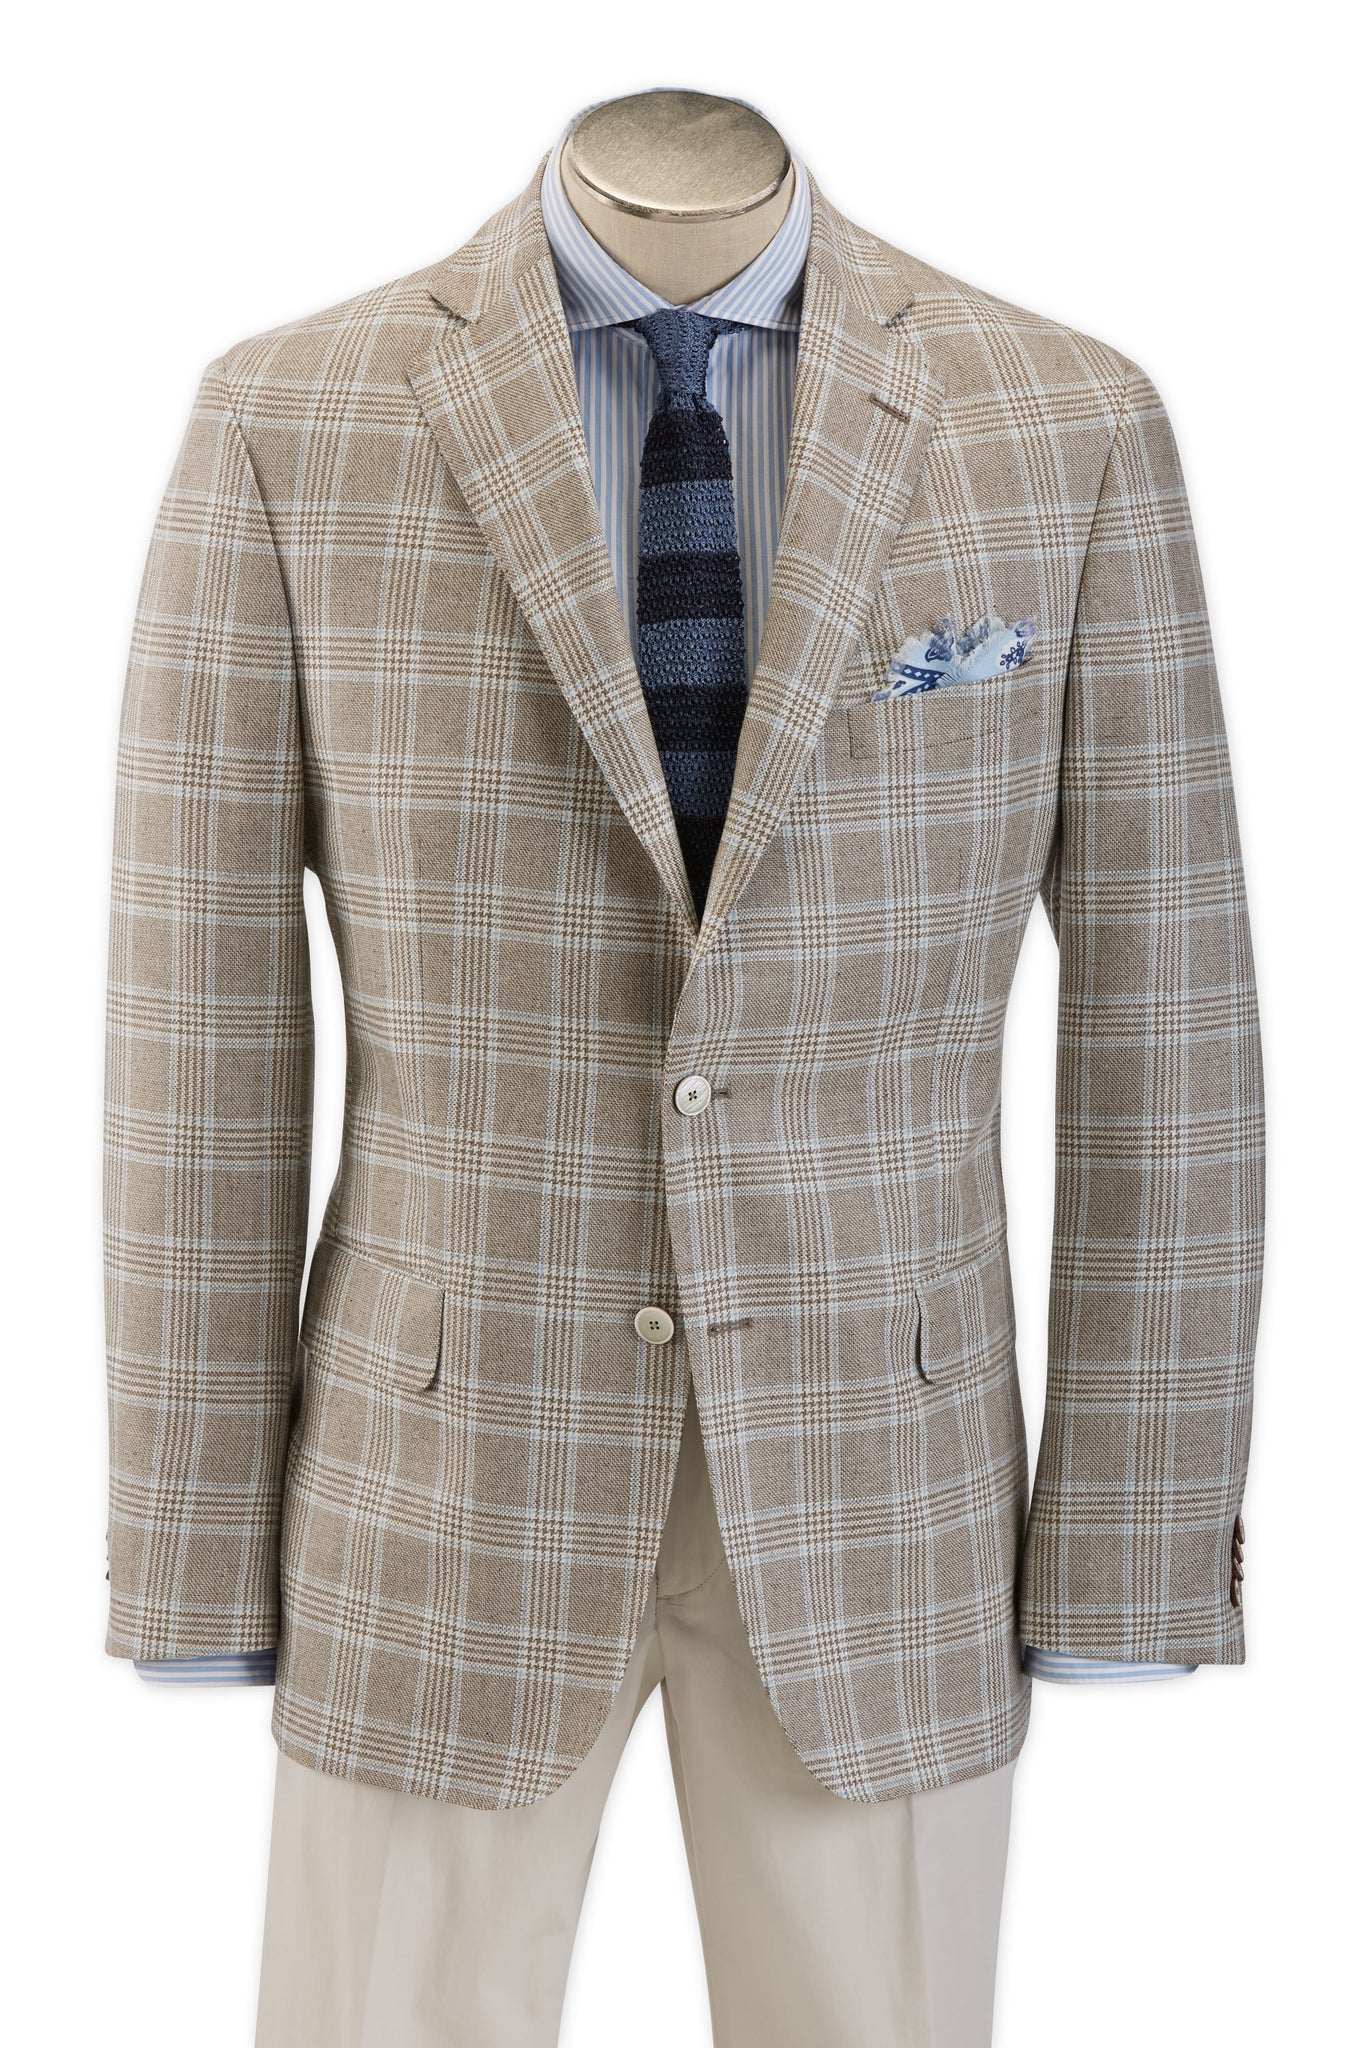 Modern Fit Brown Glen Plaid with Sky Blue Windowpane Sport Coat -  Hardwick.com